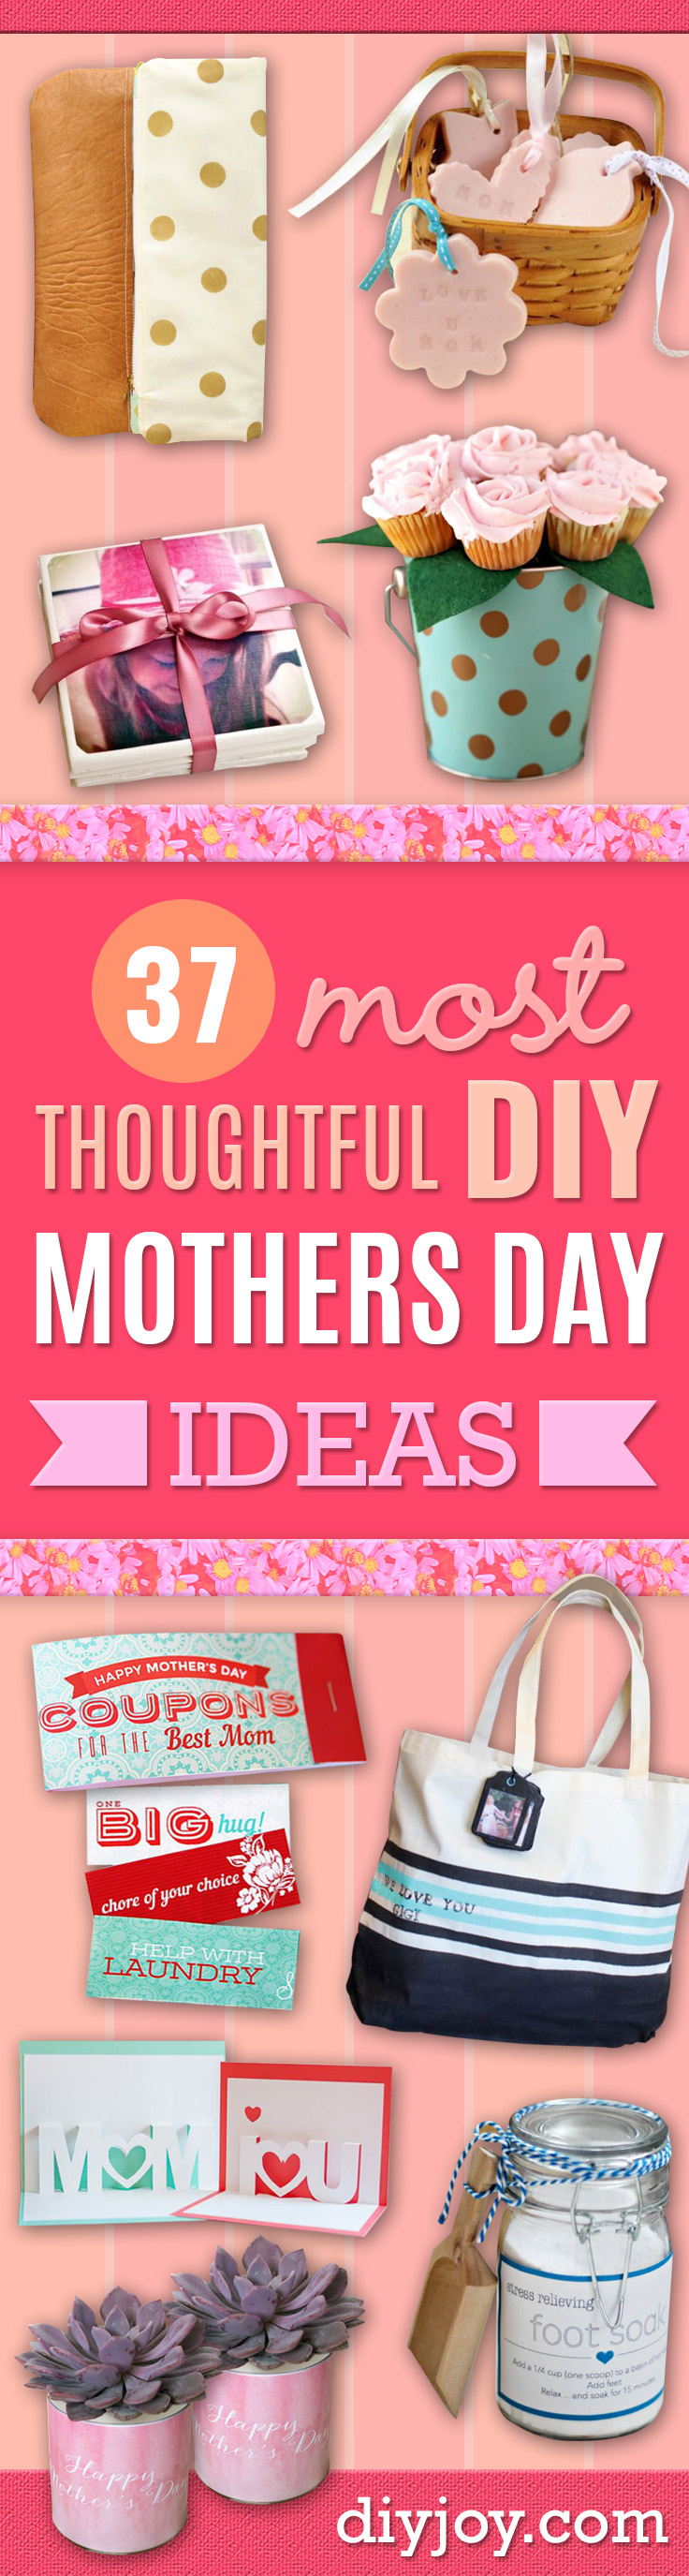 Best Mothers Day Ideas - Easy and Cute DIY Projects to Make for Mom - Cool Gifts and Homemade Cards, Gift in A Jar Ideas - Cheap Things You Can Make for Your Mother http://diyjoy.com/diy-mothers-day-ideas